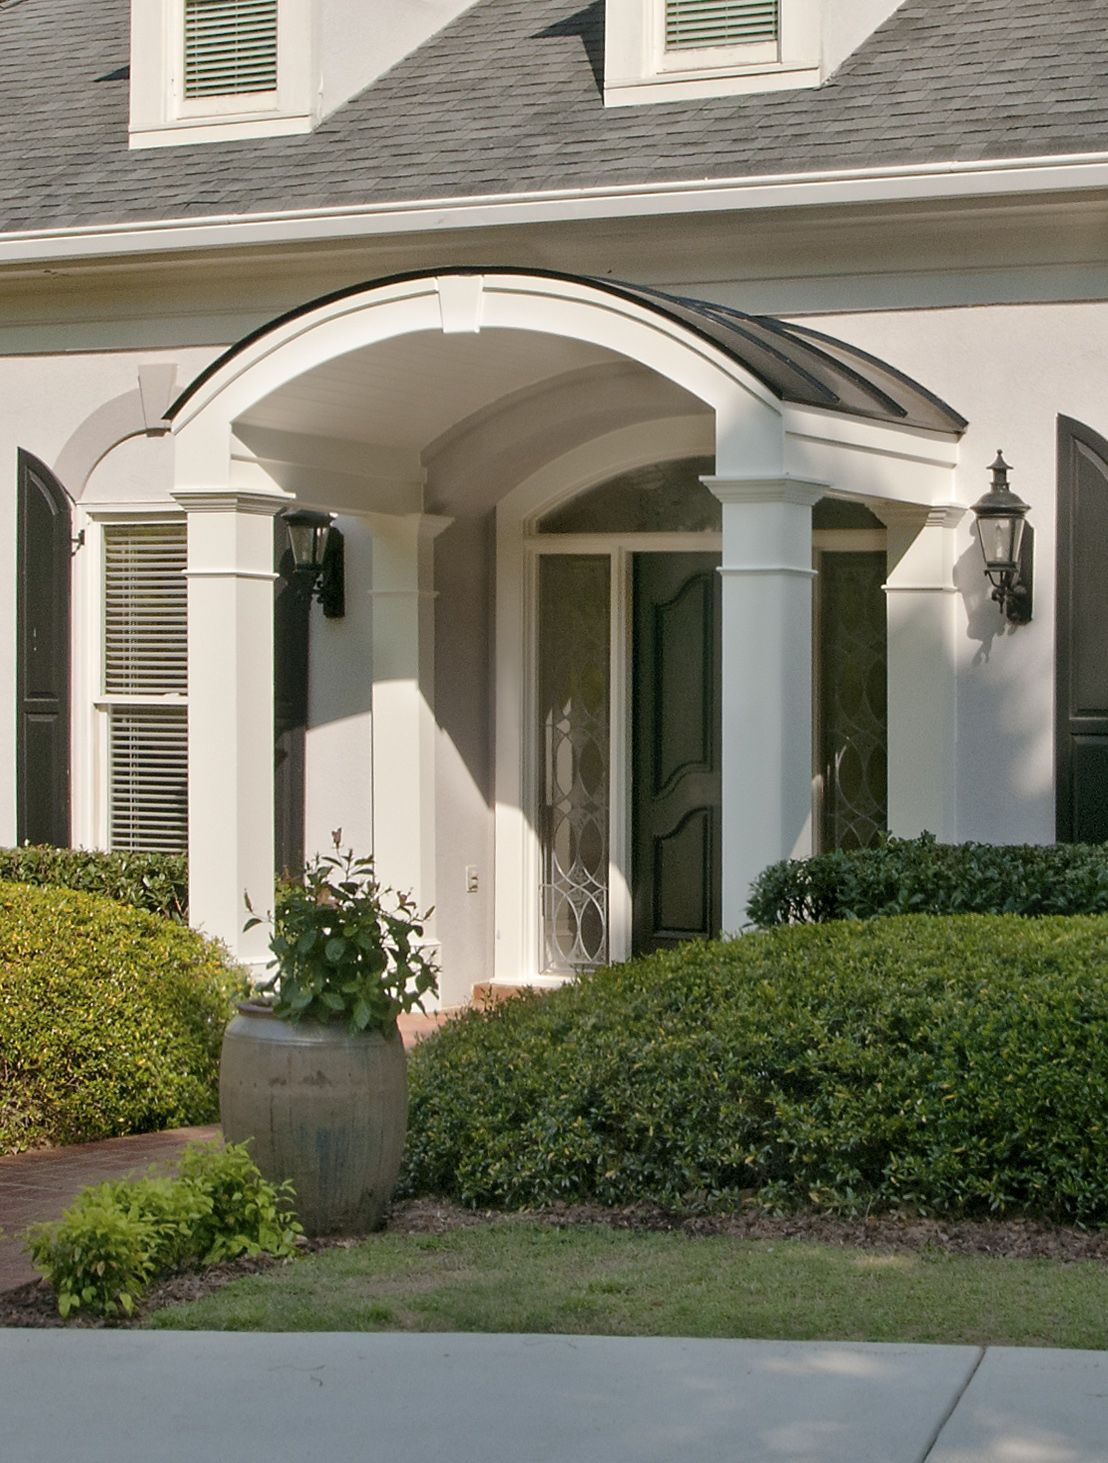 Elegant Arched Portico Addition On French Provincial Home